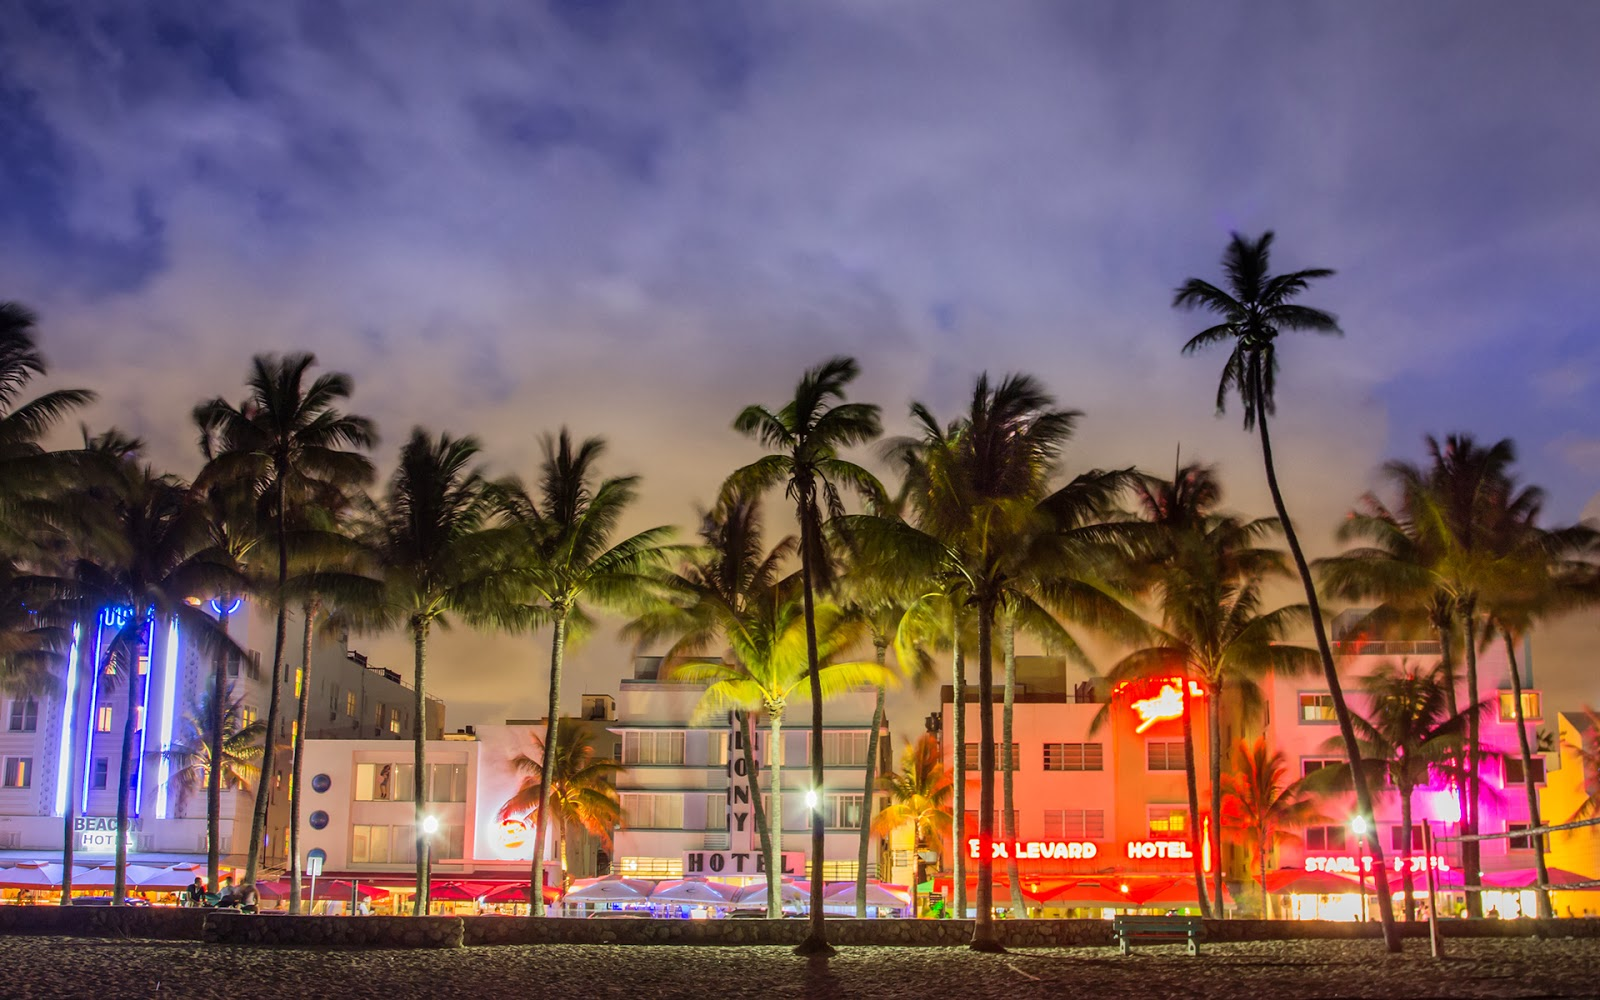 city, miami florida, city view, city wallpaper, south beach miami